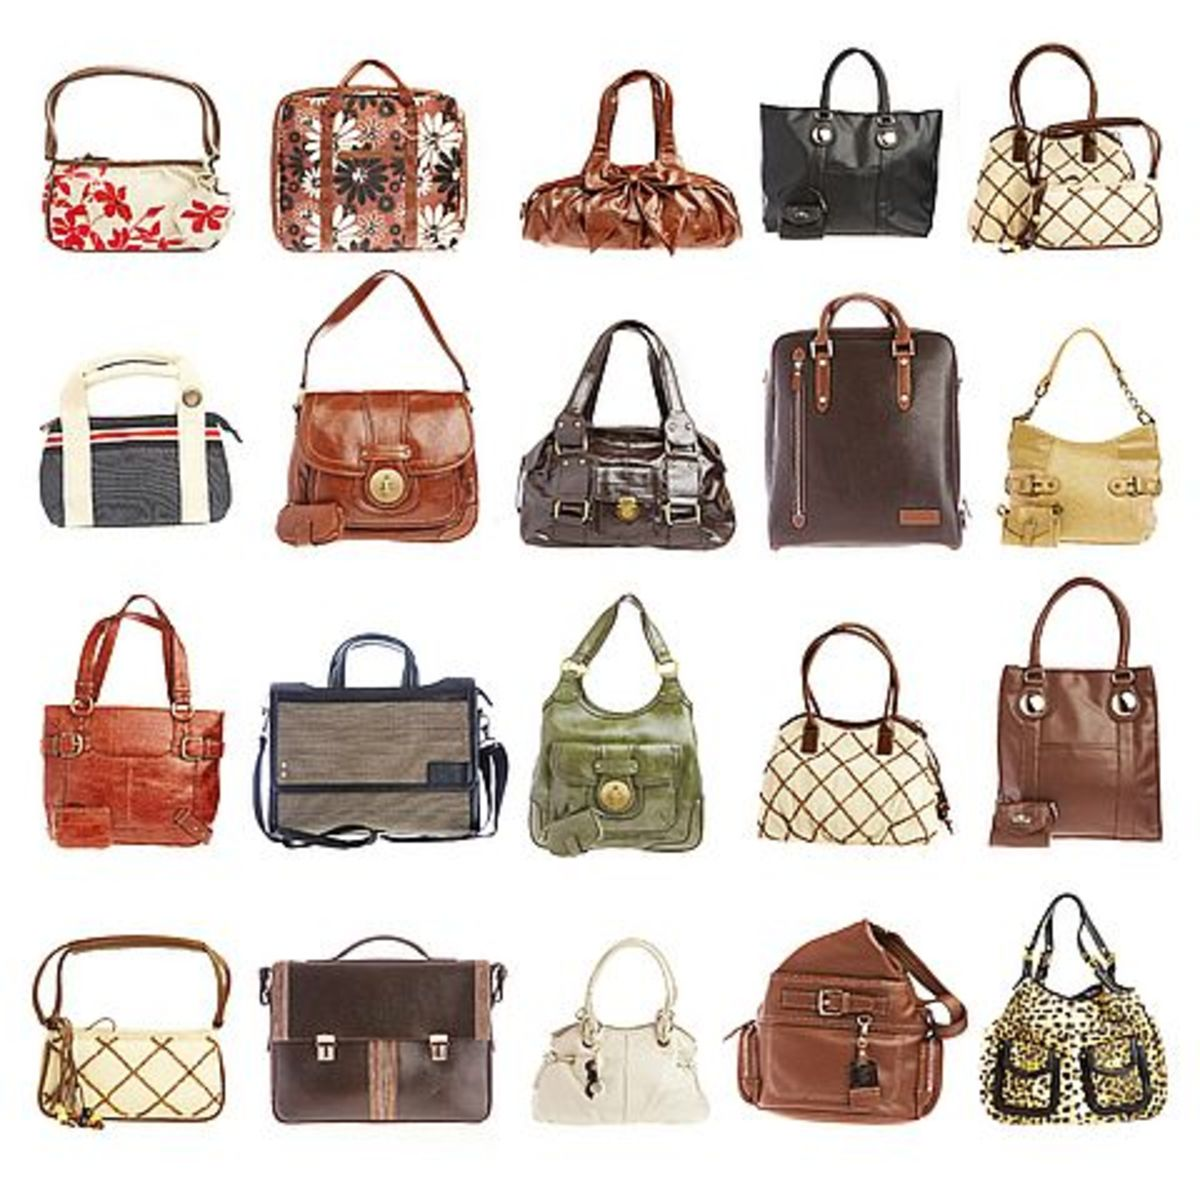 what-is-in-your-purse-top-essentials-women-with-adhd-should-have-in-her-purse